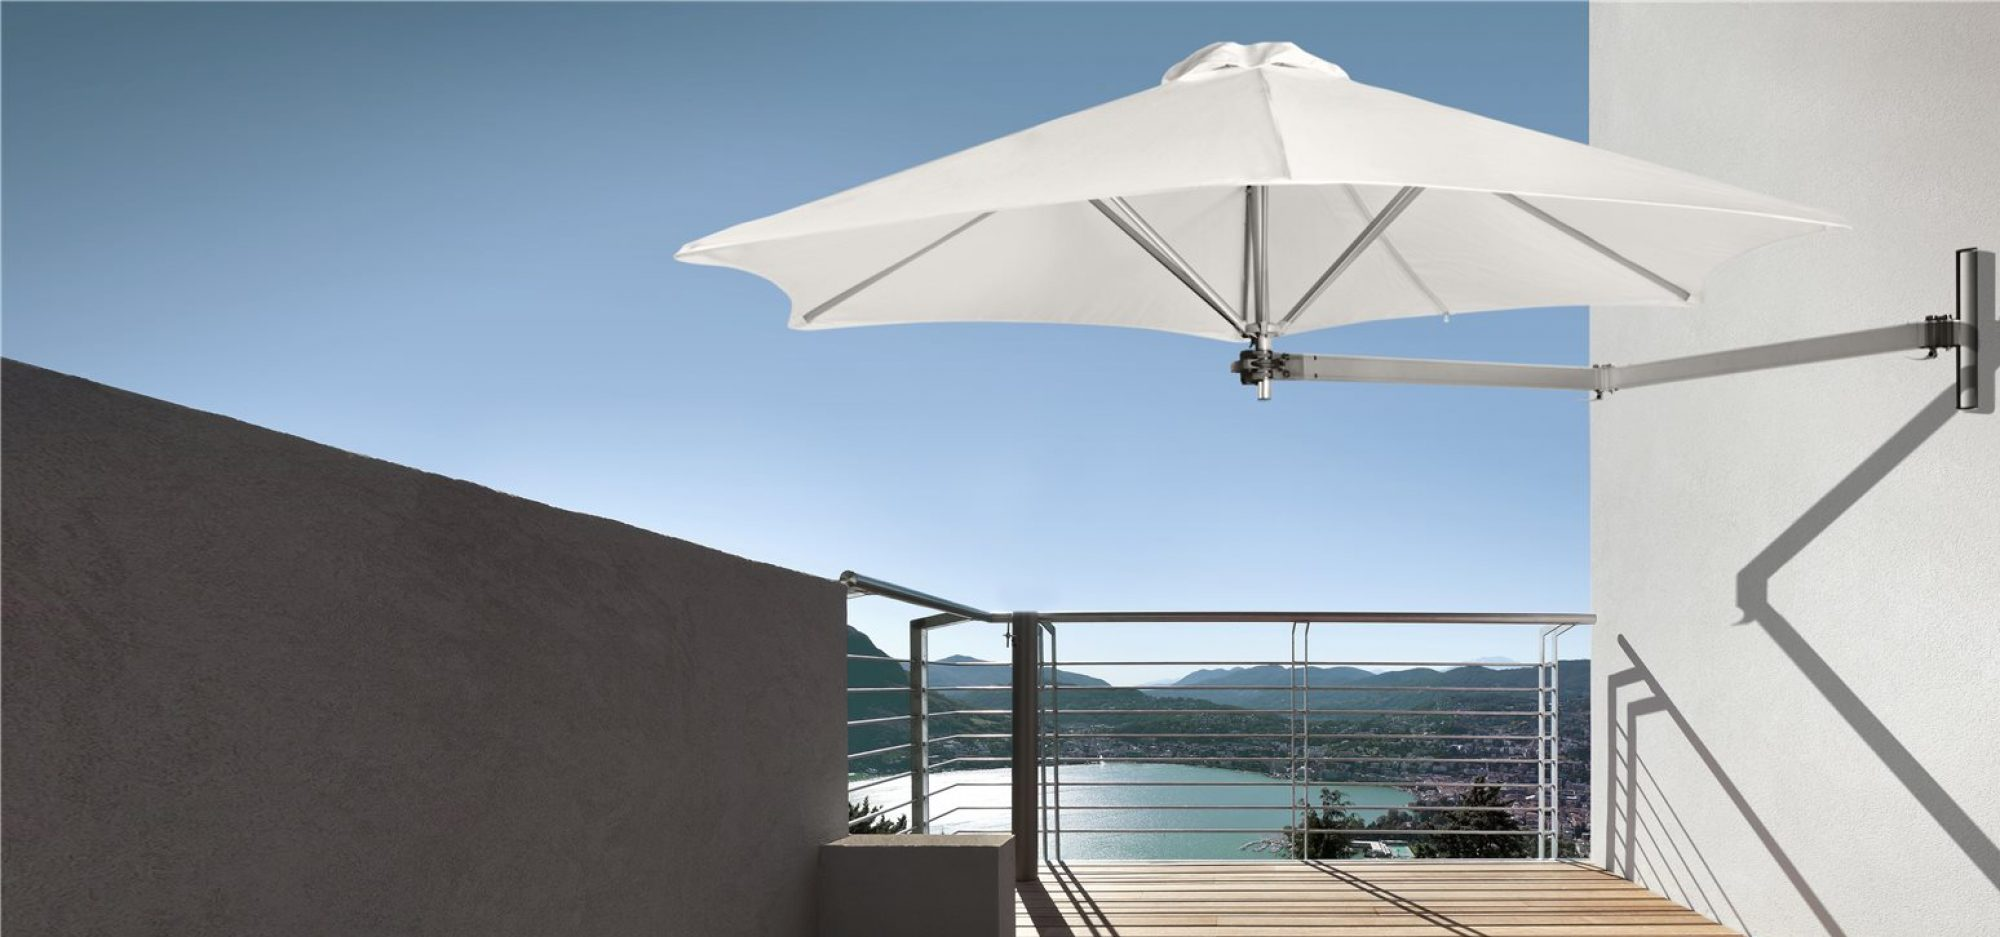 Paraflex Umbrella's